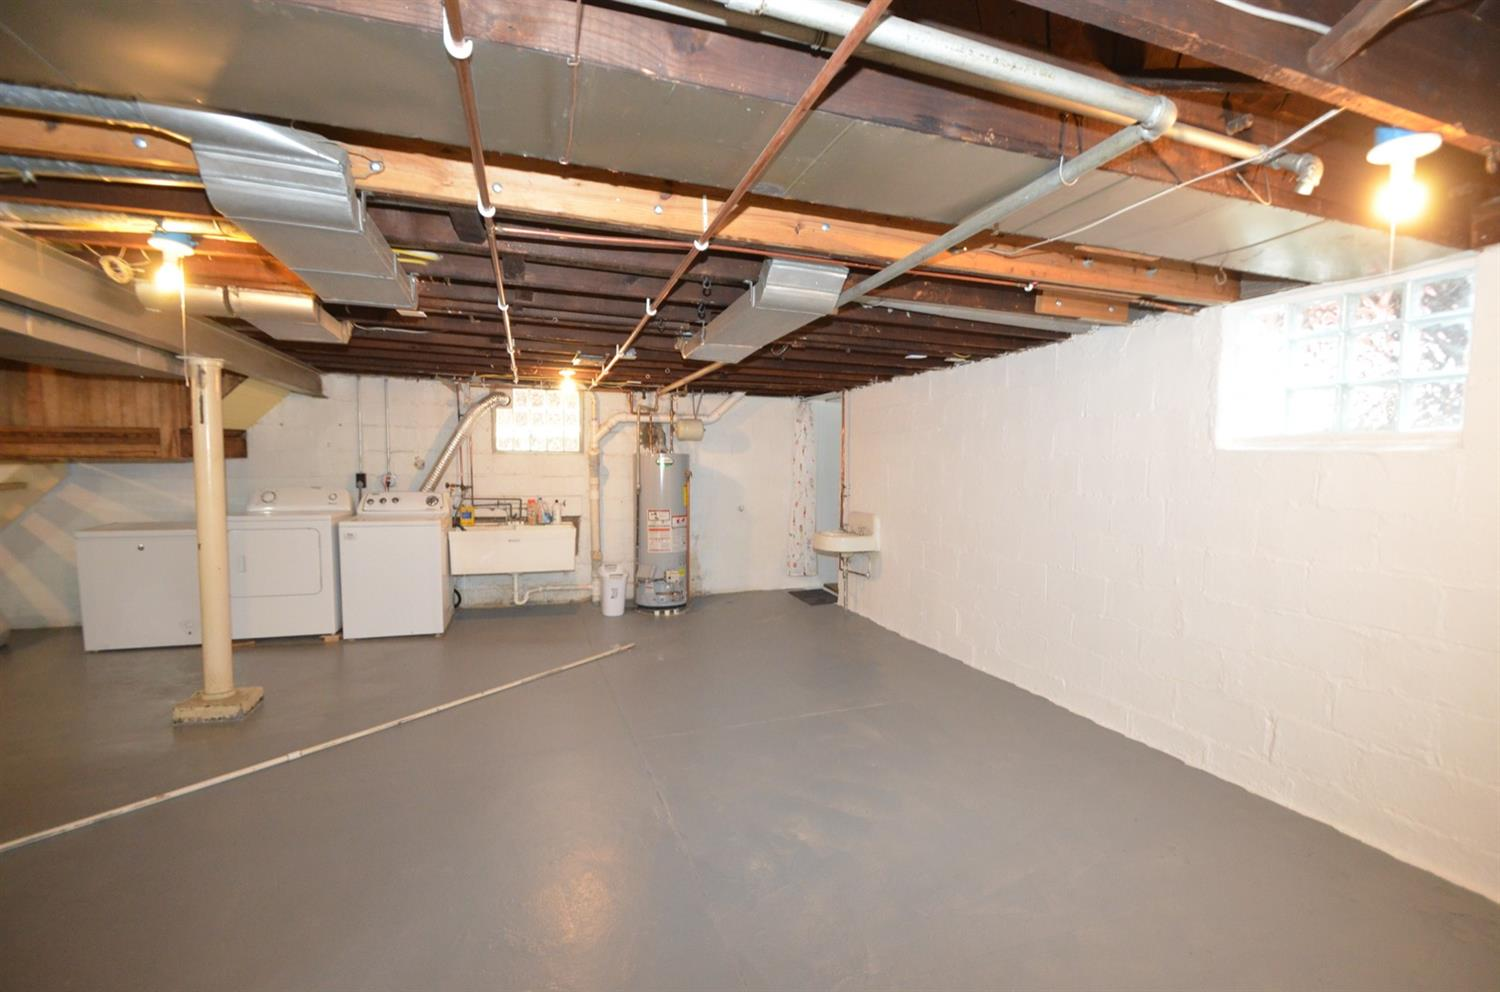 Spacious, bright and clean basement!